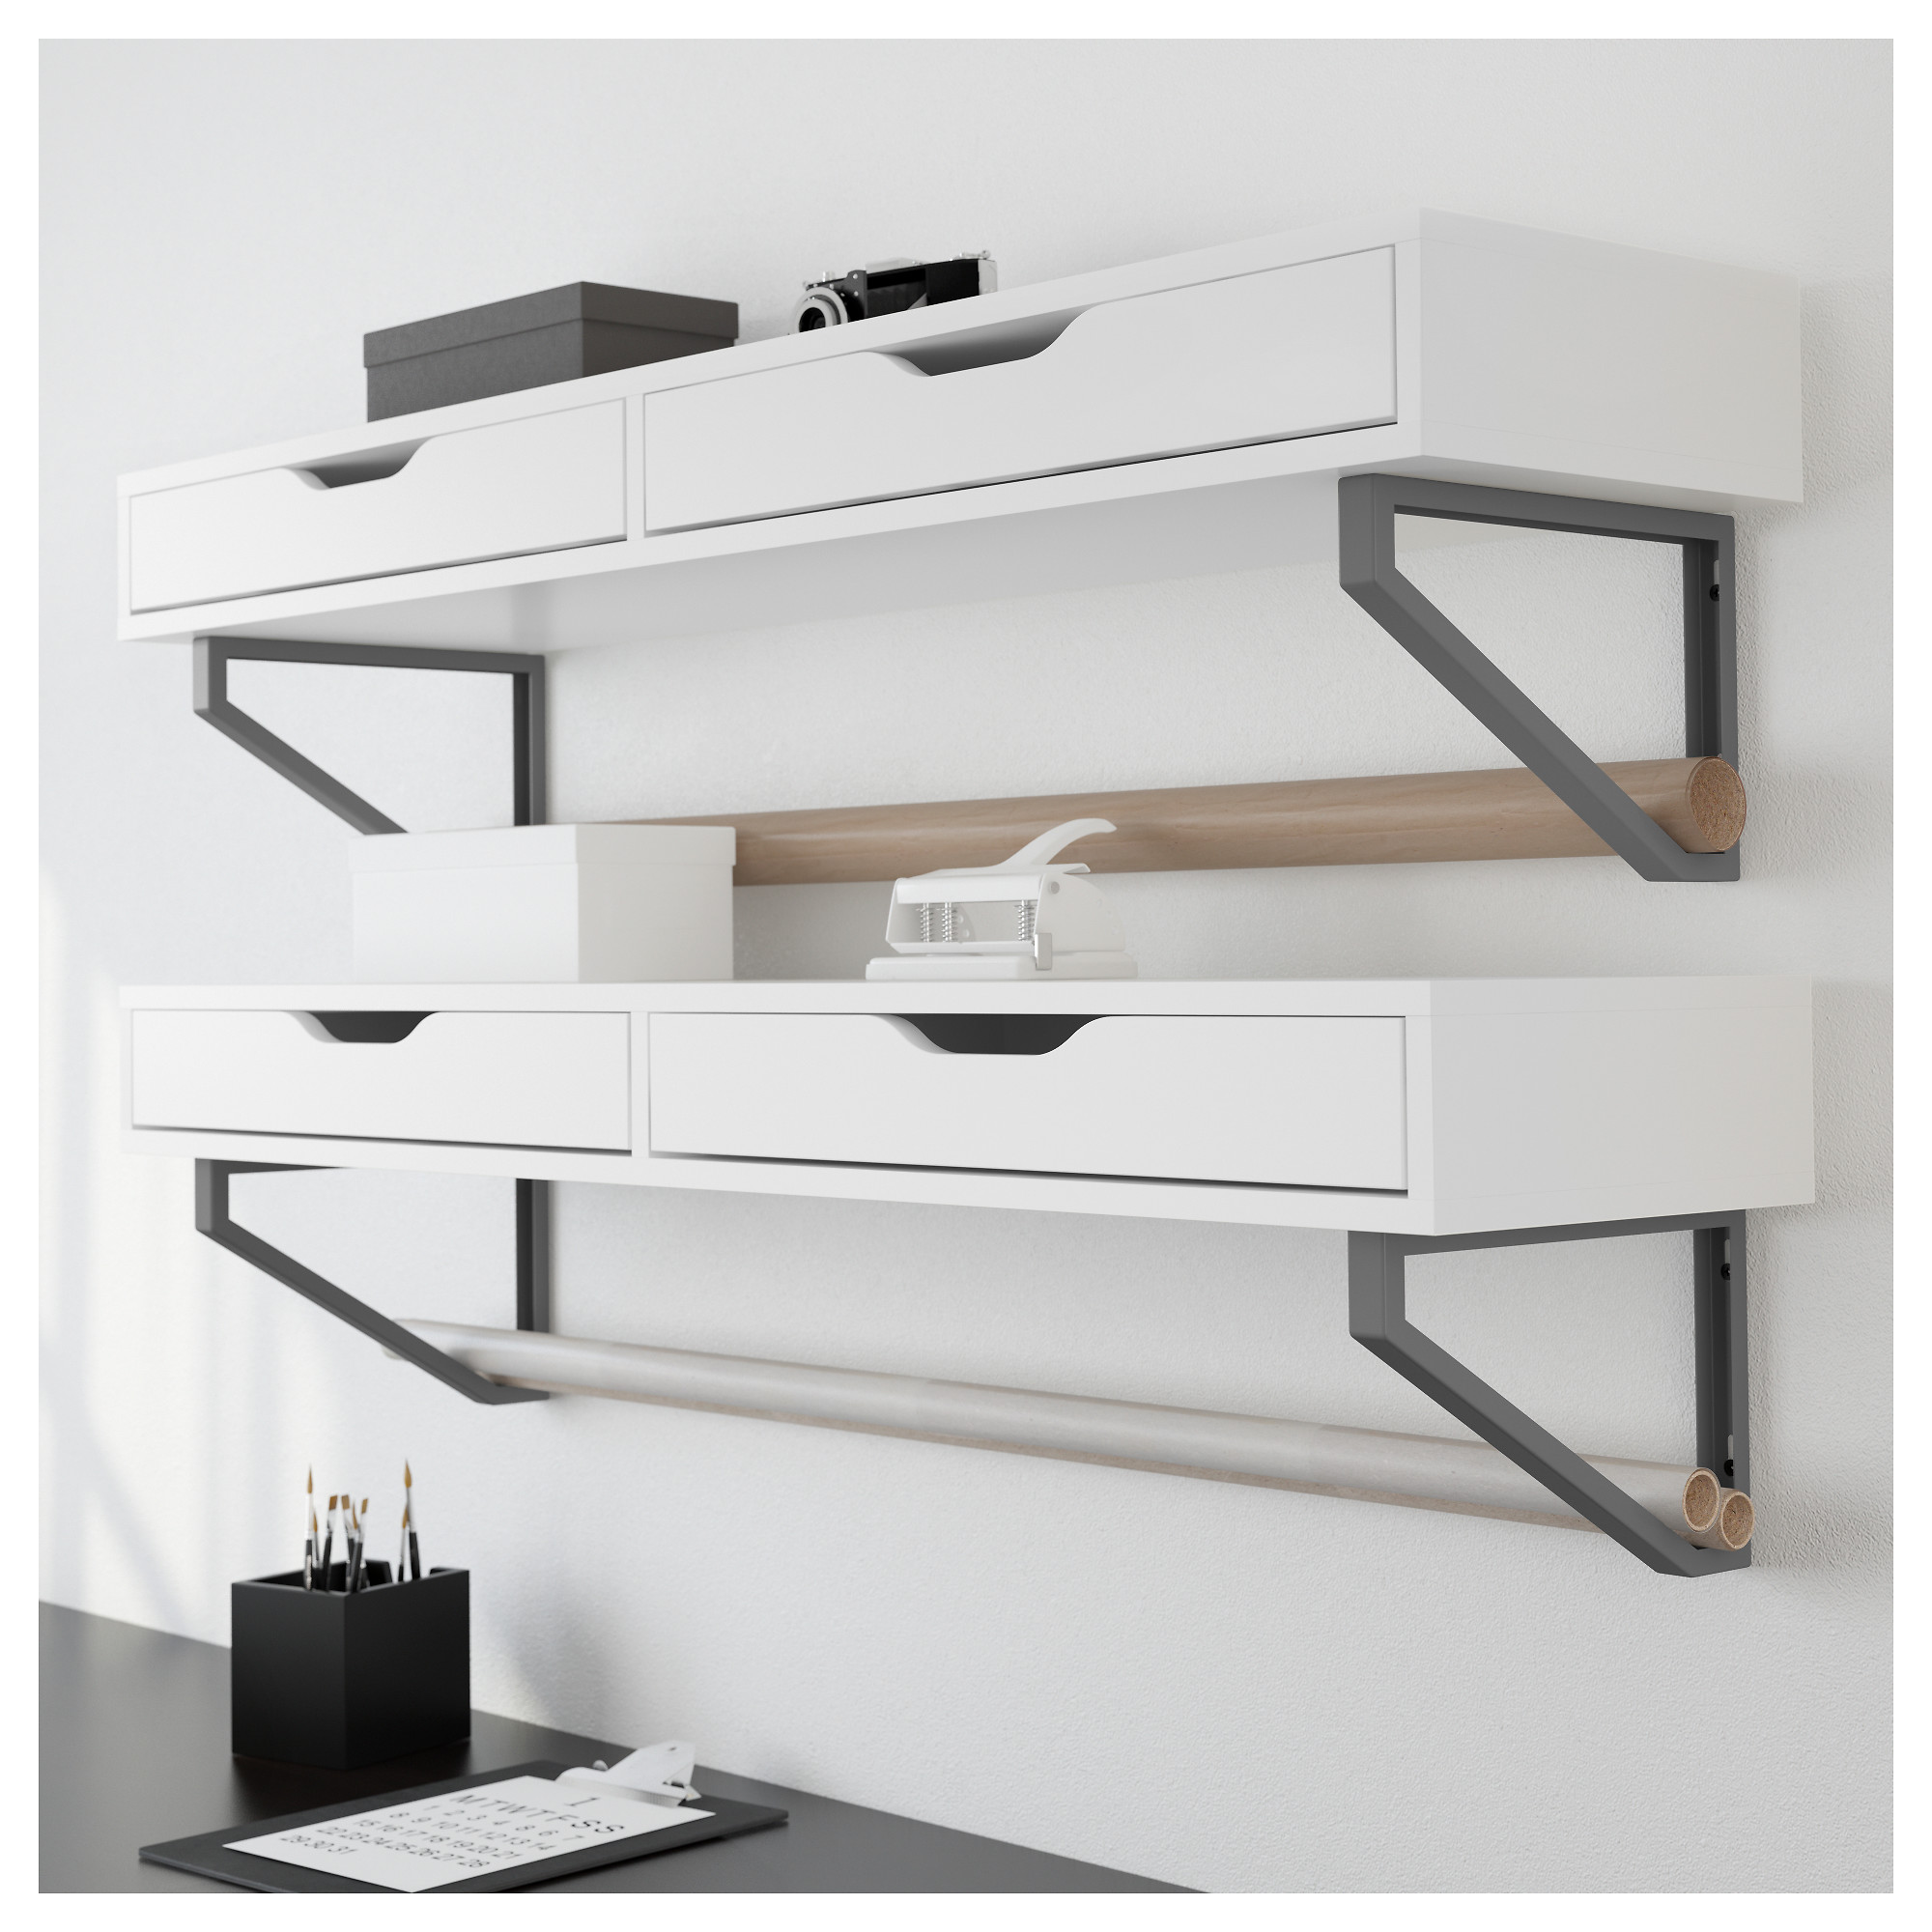 ekby alex shelf with drawers - ikea